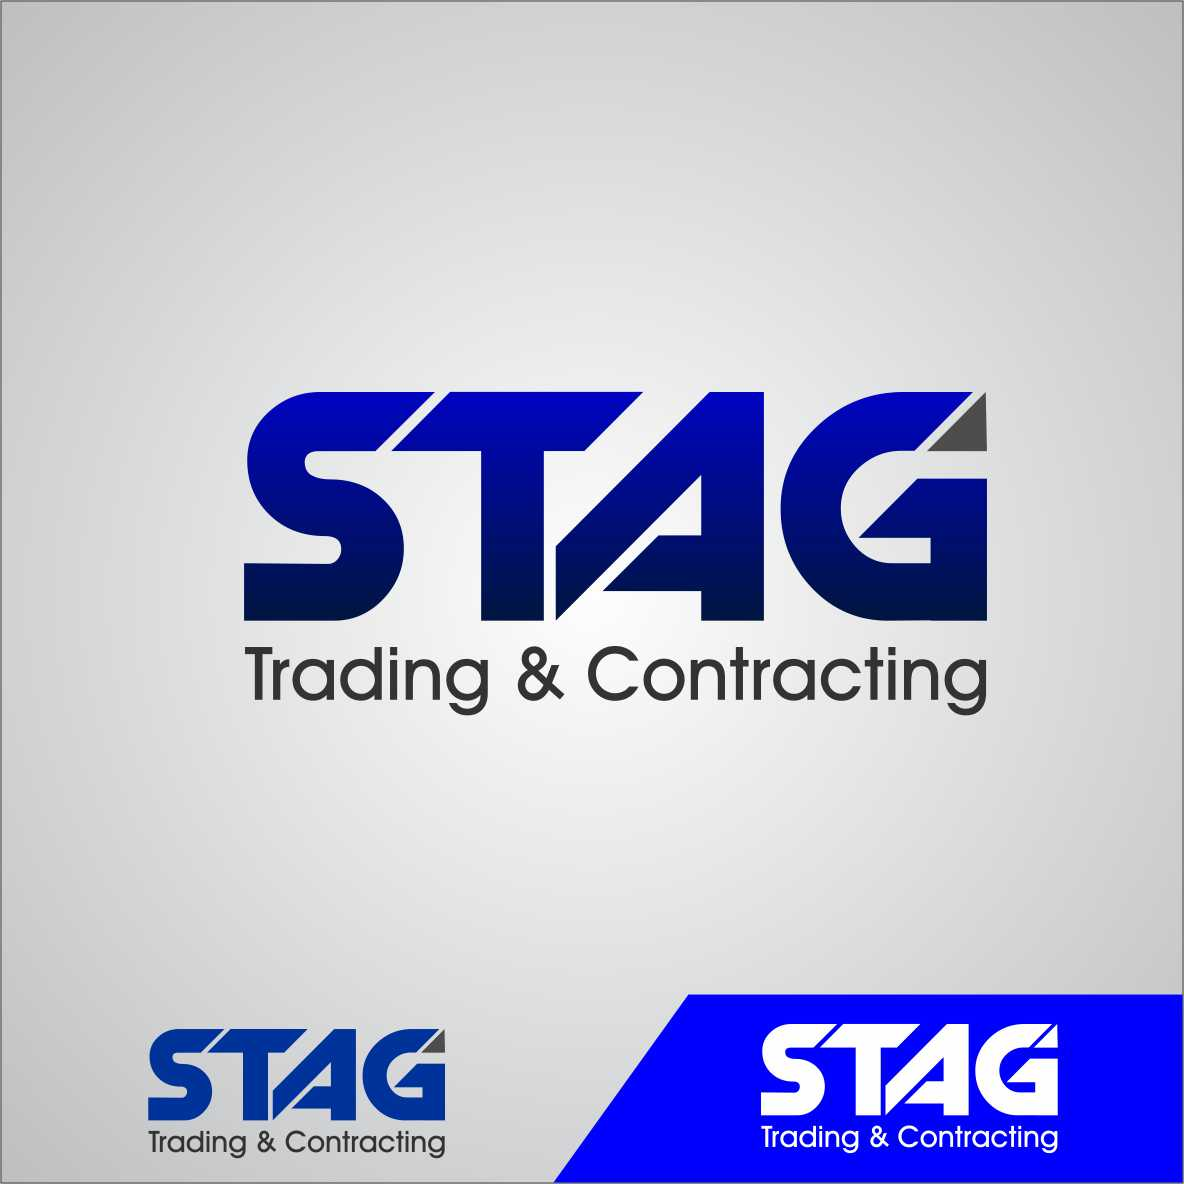 Logo Design by arteo_design - Entry No. 56 in the Logo Design Contest Captivating Logo Design for STAG Trading & Contracting.